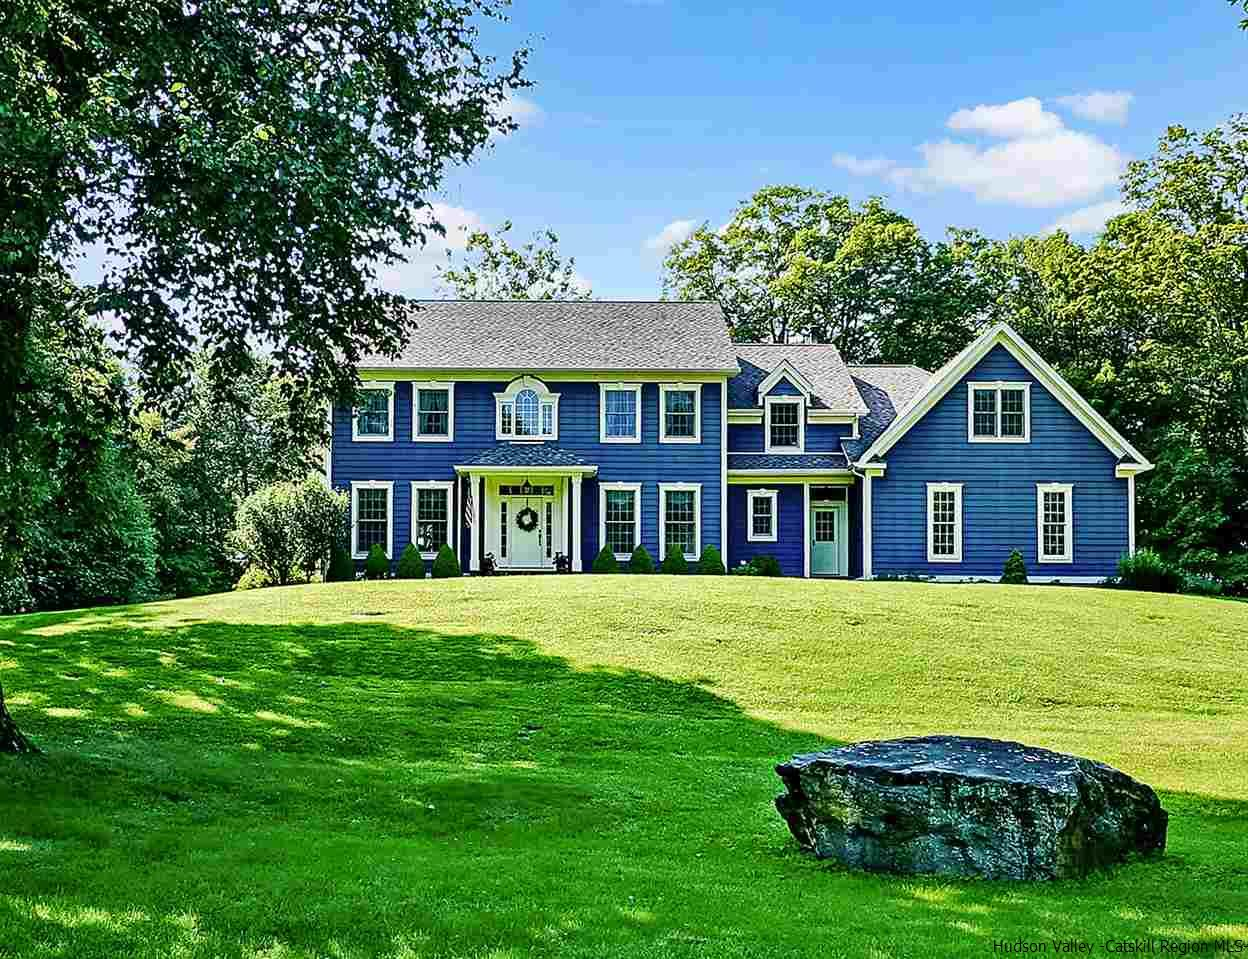 Single Family Home for Sale at 59 Barraco Boulevard 59 Barraco Boulevard Rhinebeck, New York 12572 United States